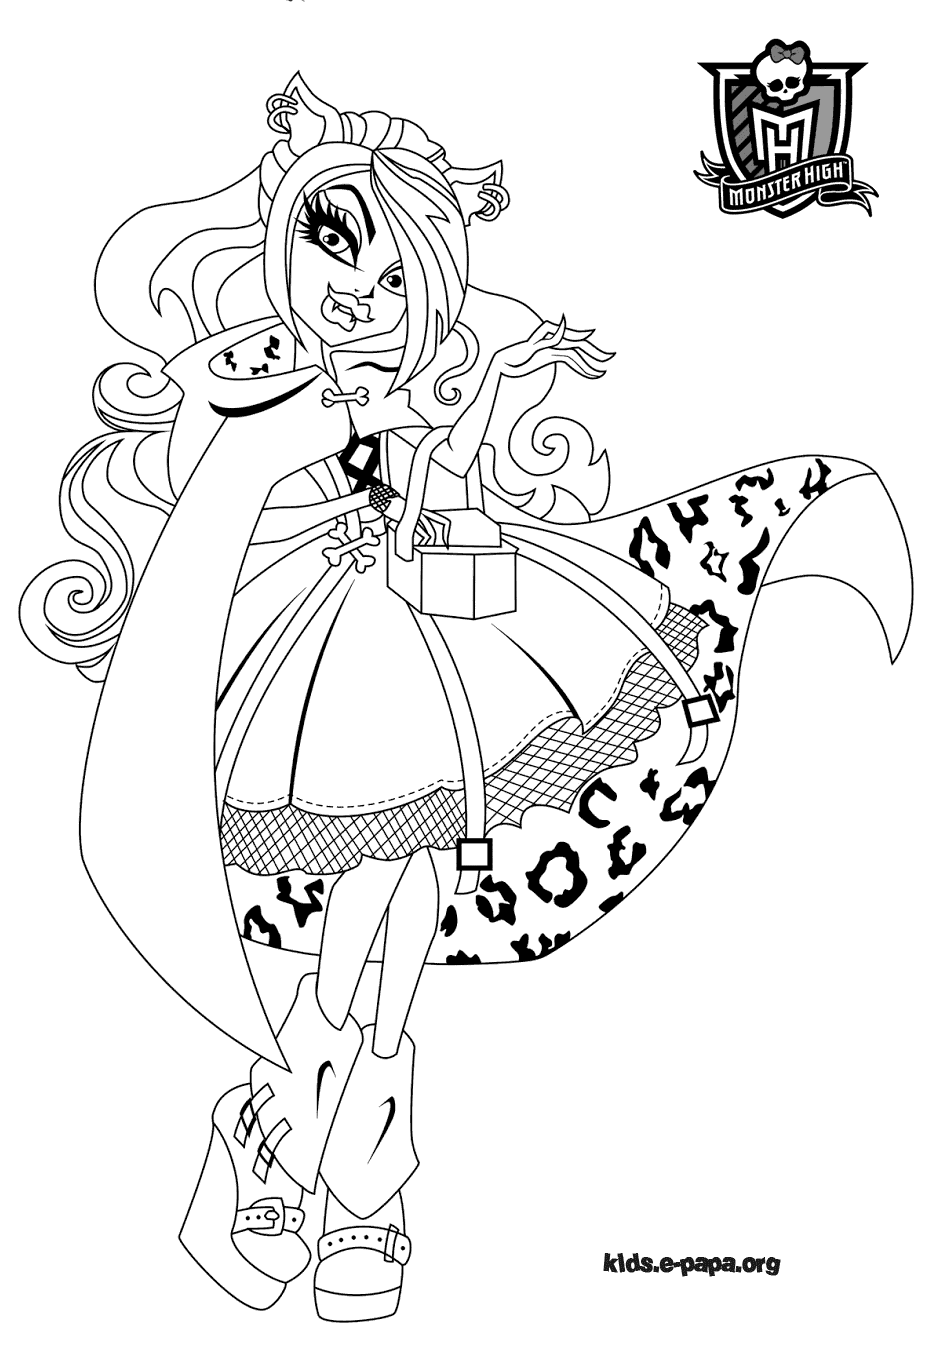 Monster High Ausmalbilder Jinafire : Monster High Draculaura Coloriage Draculaura Monster High Coloring